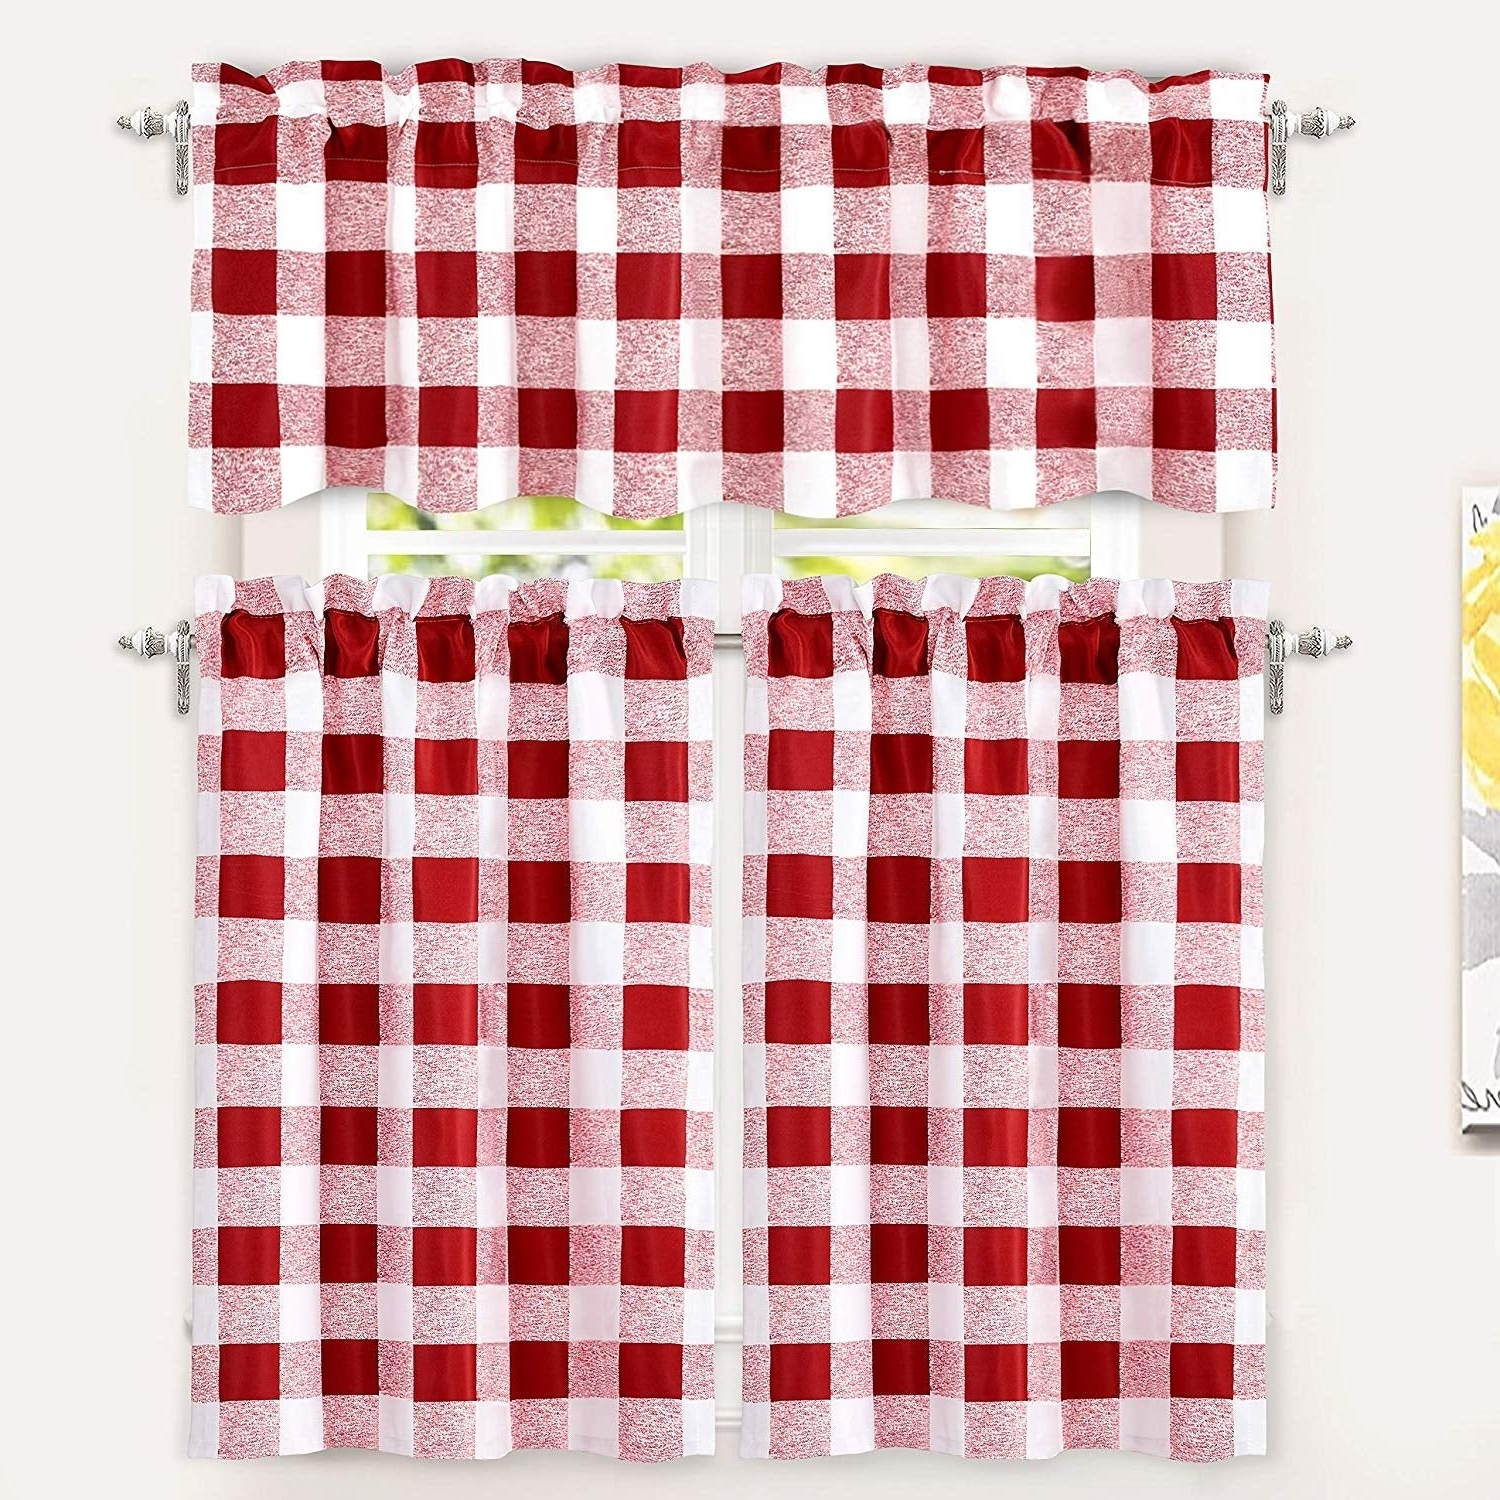 Best And Newest Lodge Plaid 3 Piece Kitchen Curtain Tier And Valance Sets Regarding Driftaway Buffalo Checker Plaid 3 Piece Kitchen Curtain Valance And Tiers  Set (Gallery 13 of 20)